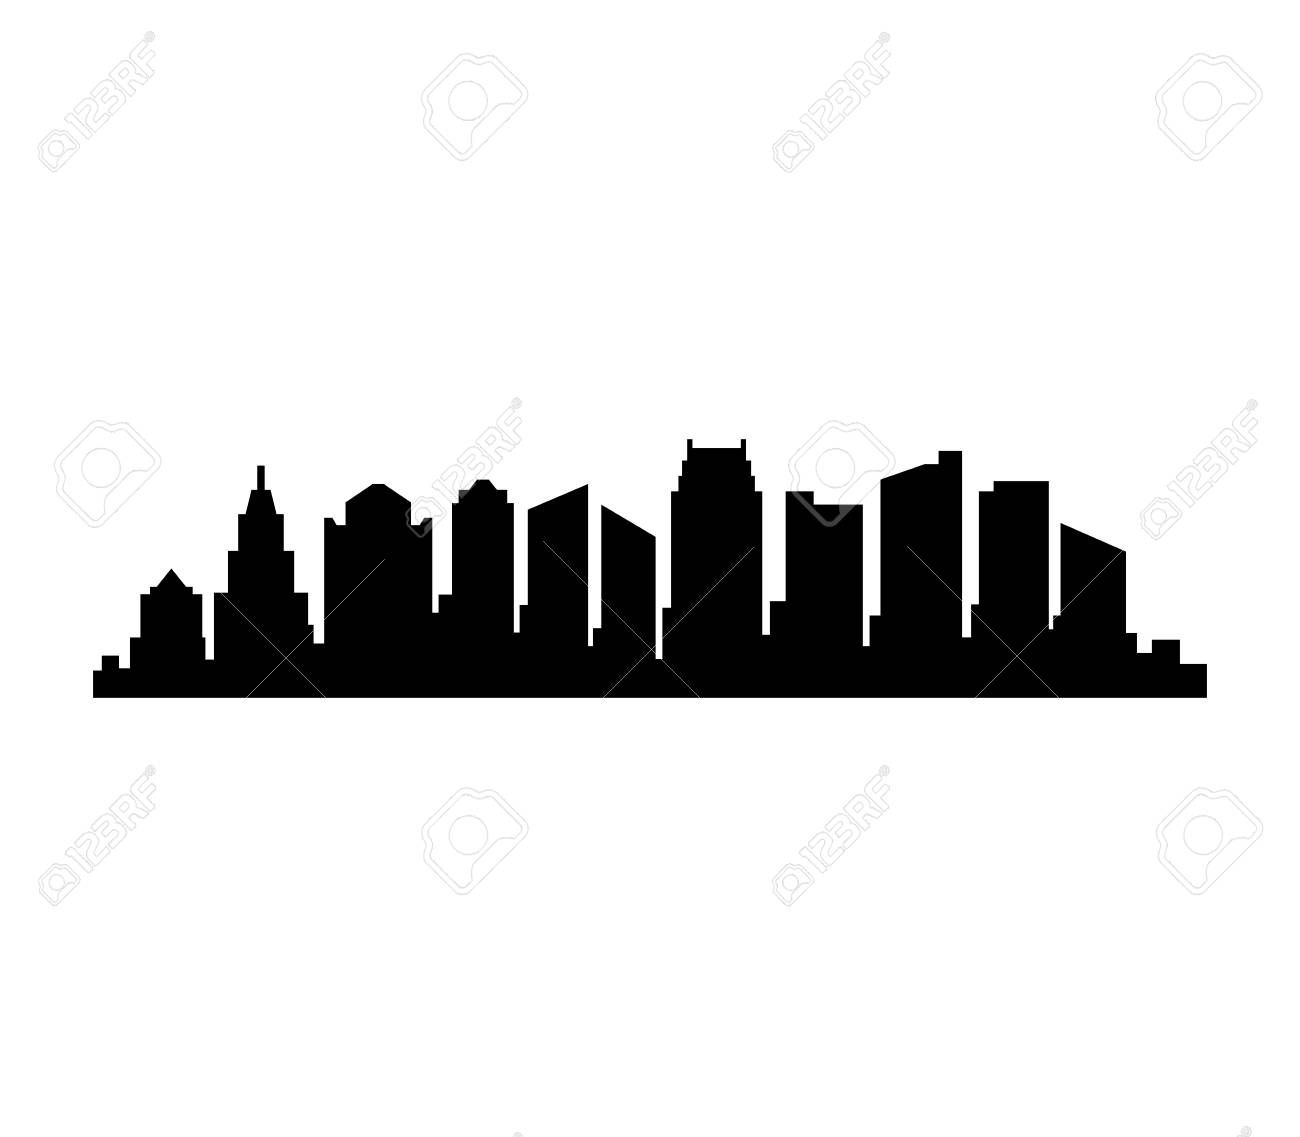 detroit skyline royalty free cliparts vectors and stock rh 123rf com detroit skyline vector free detroit skyline vector art